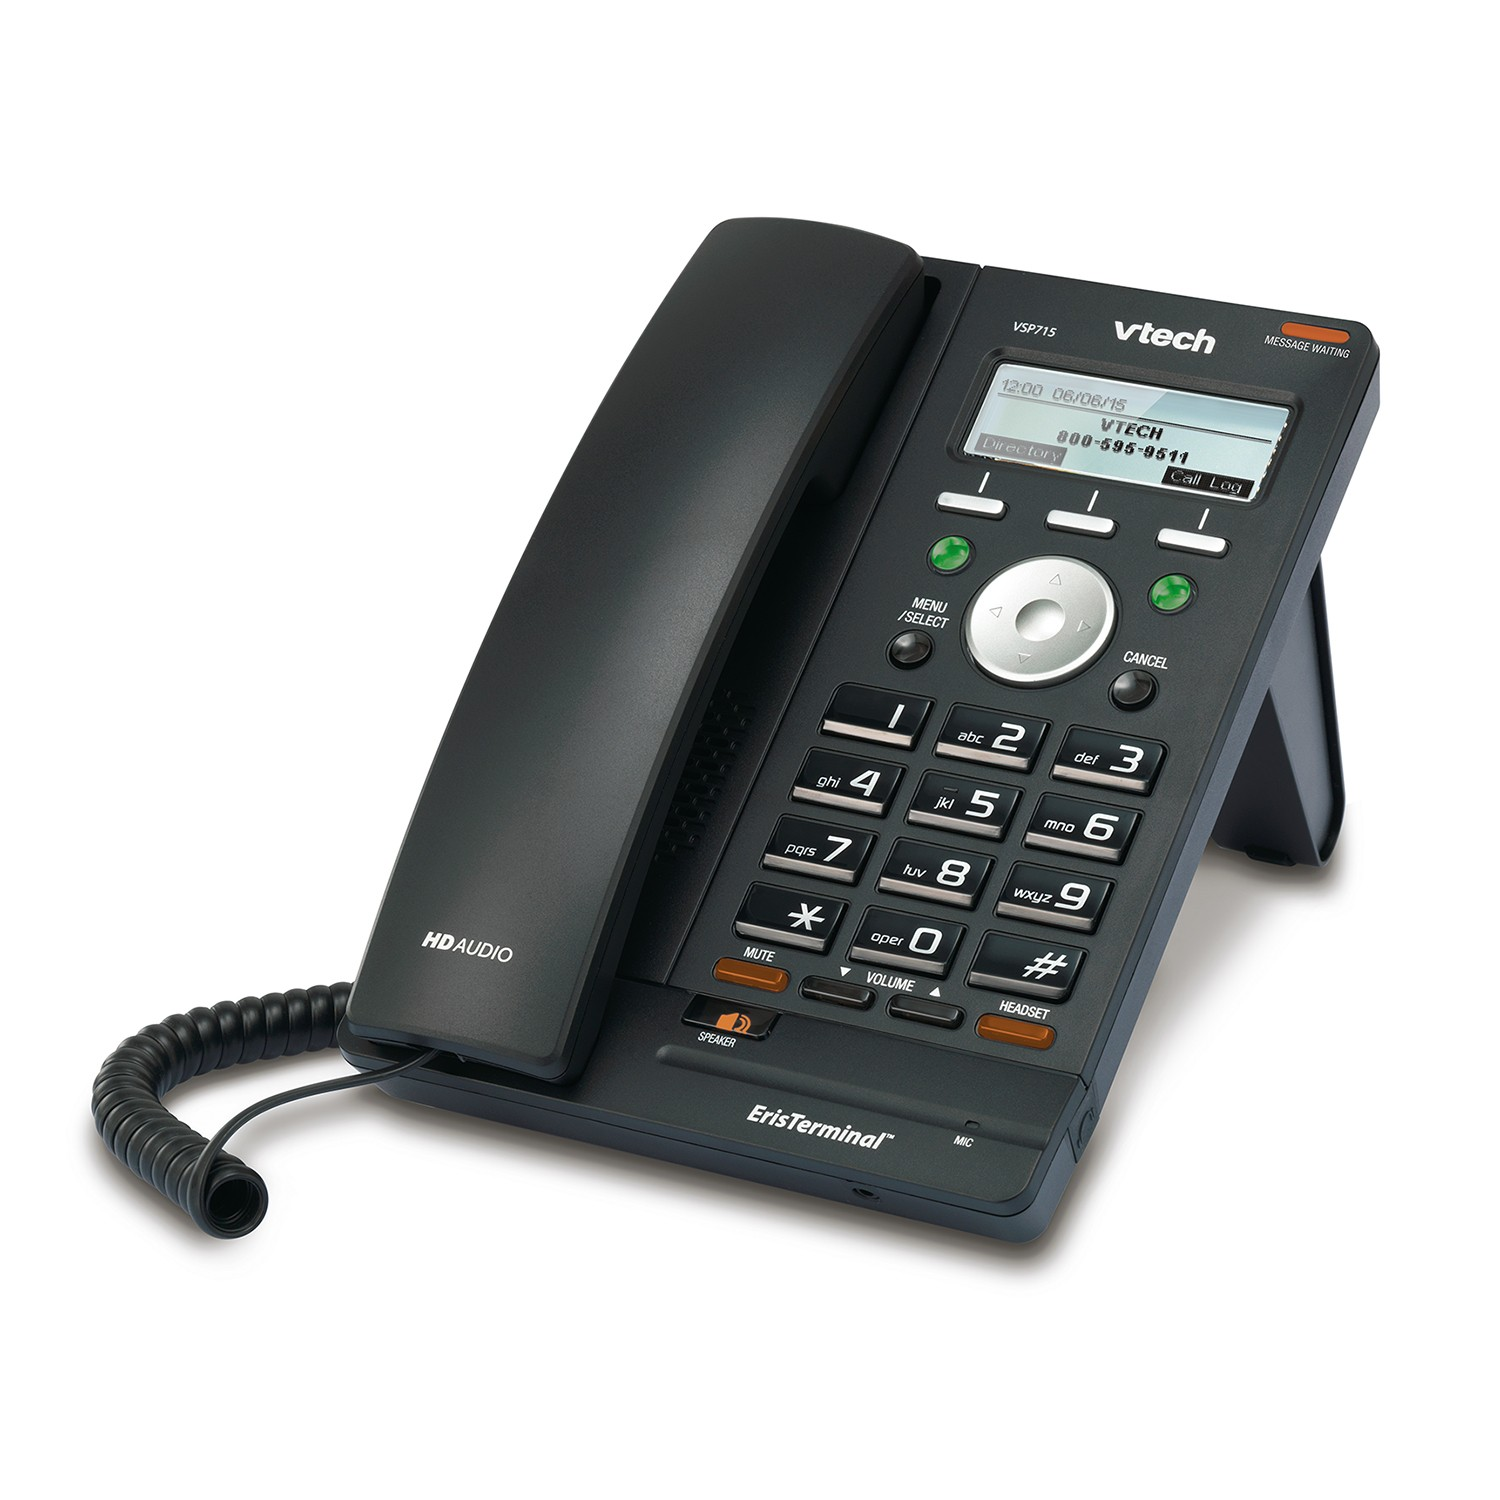 Draytek VSP715A Desk Phone by Vtech Compact entry level phone for IP PBX. PoE or add PSU